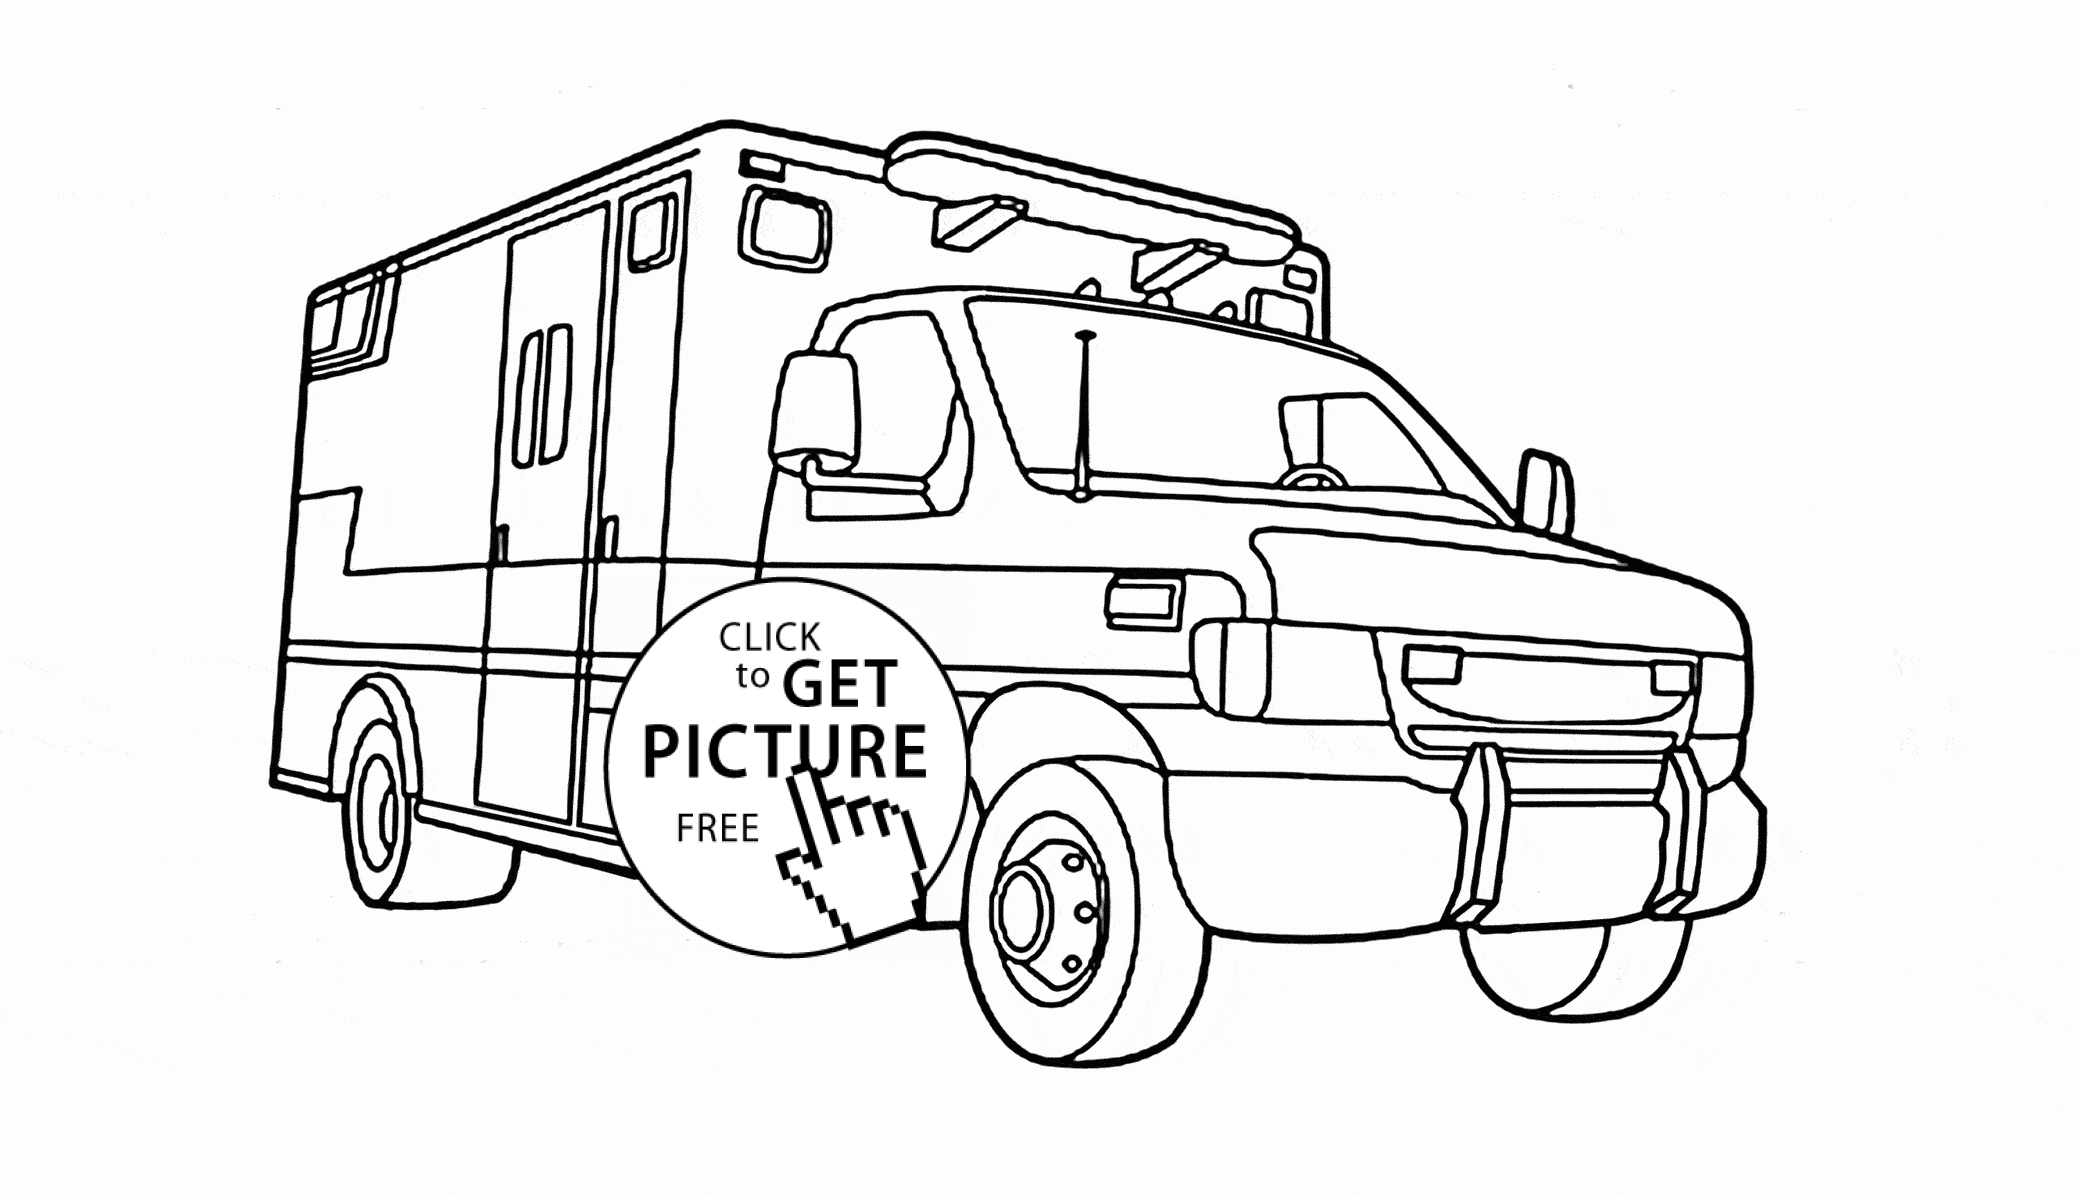 fire truck coloring page - rescue vehicle coloring page for kids transportation coloring pages printables free